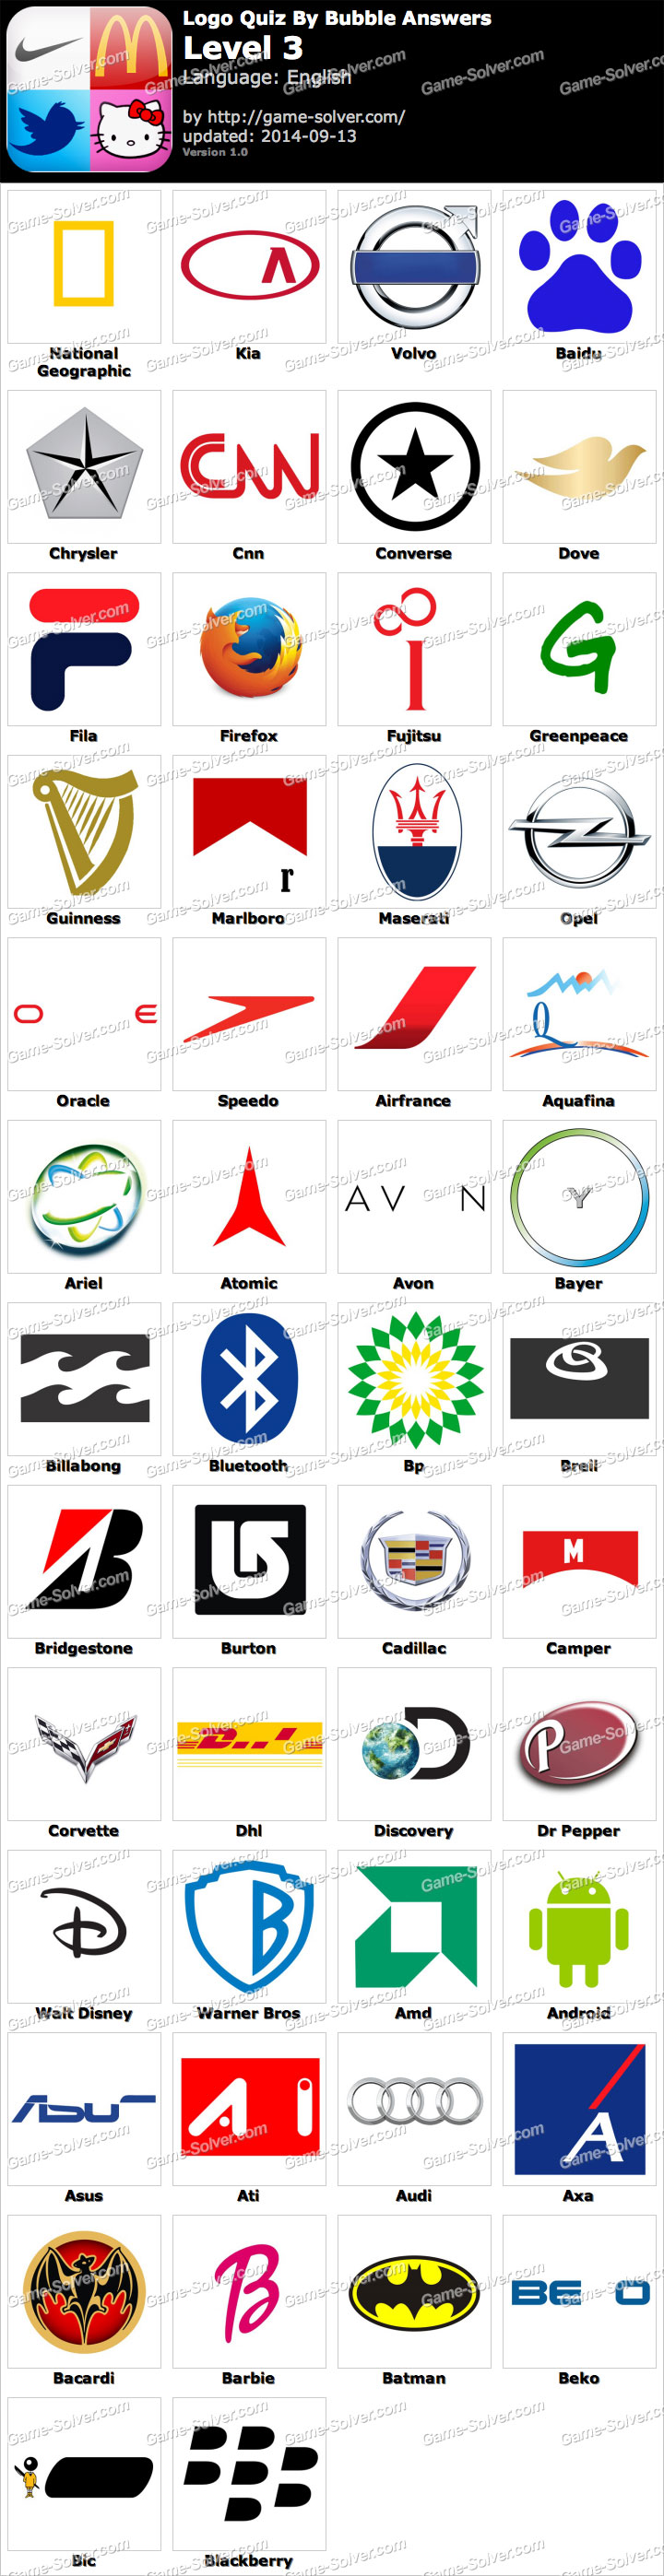 logo quiz guess the brand level 3